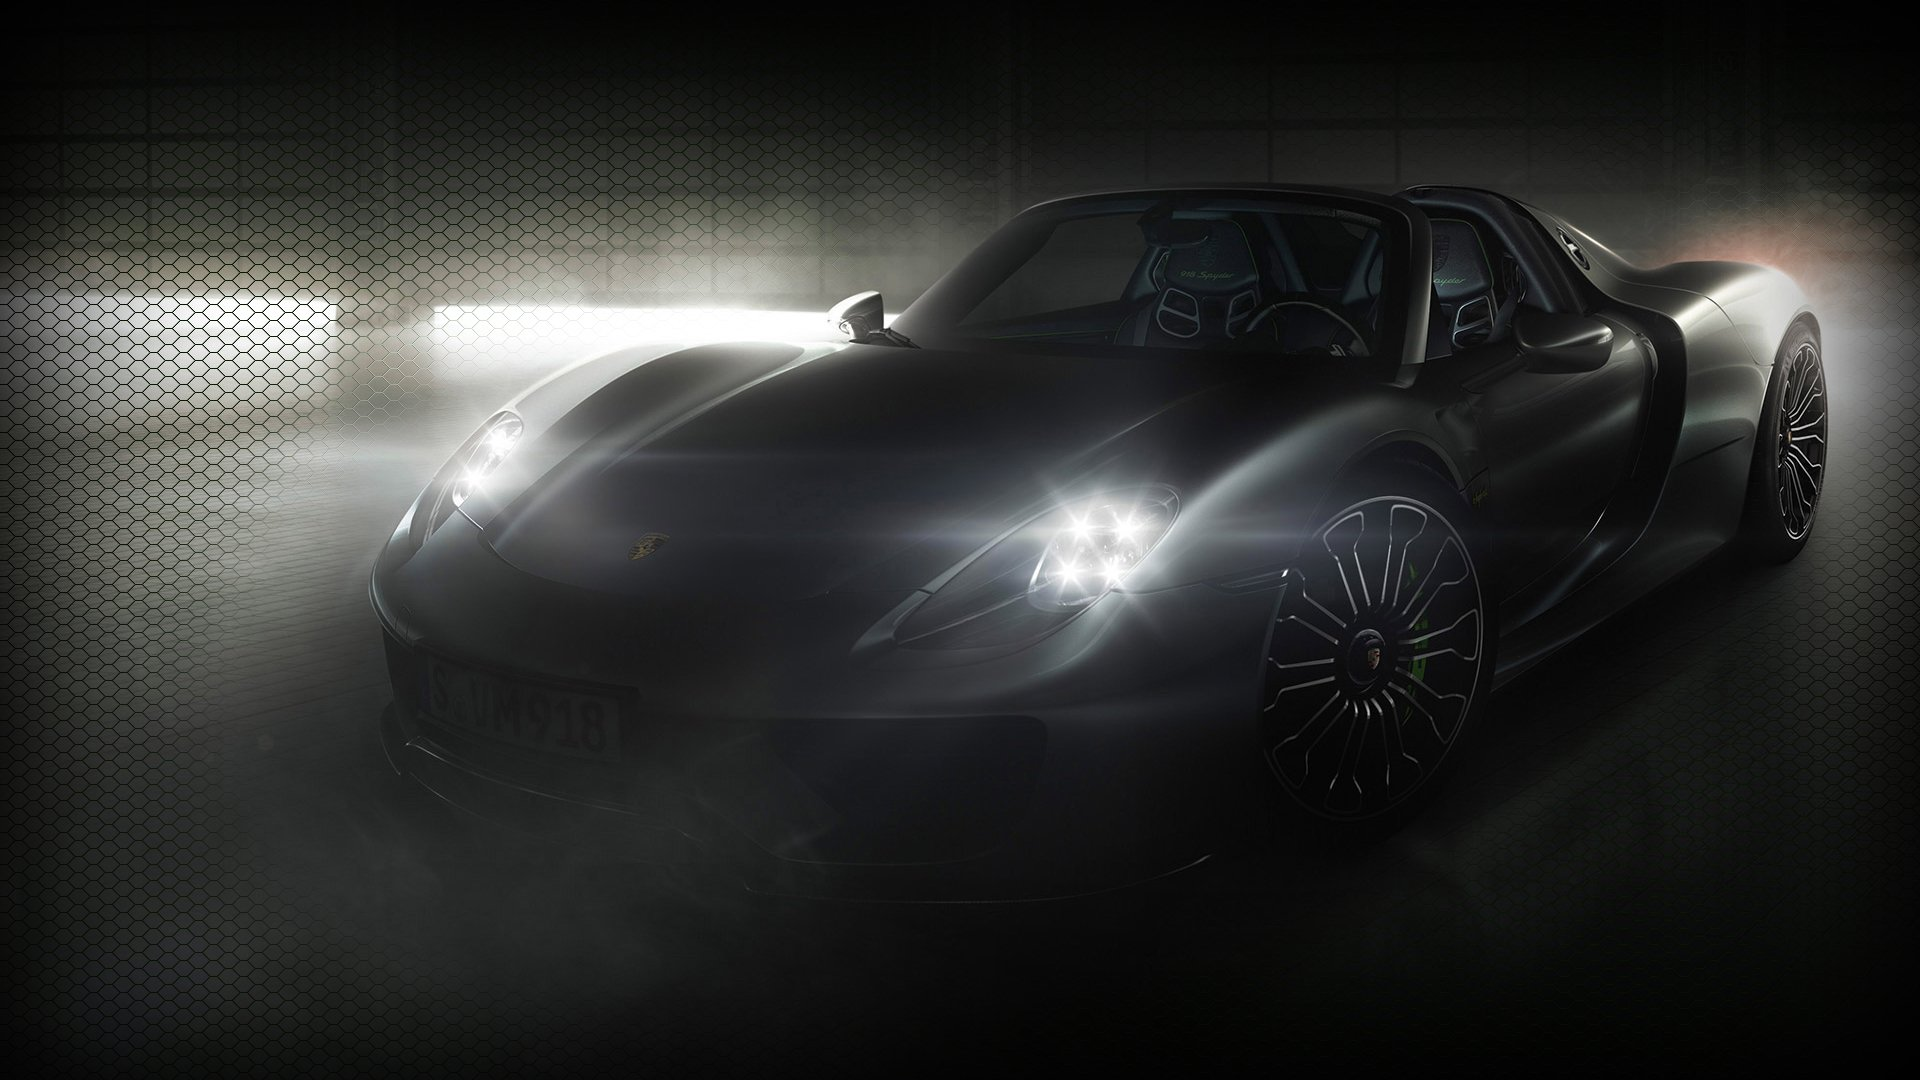 60 porsche 918 spyder hd wallpapers | background images - wallpaper